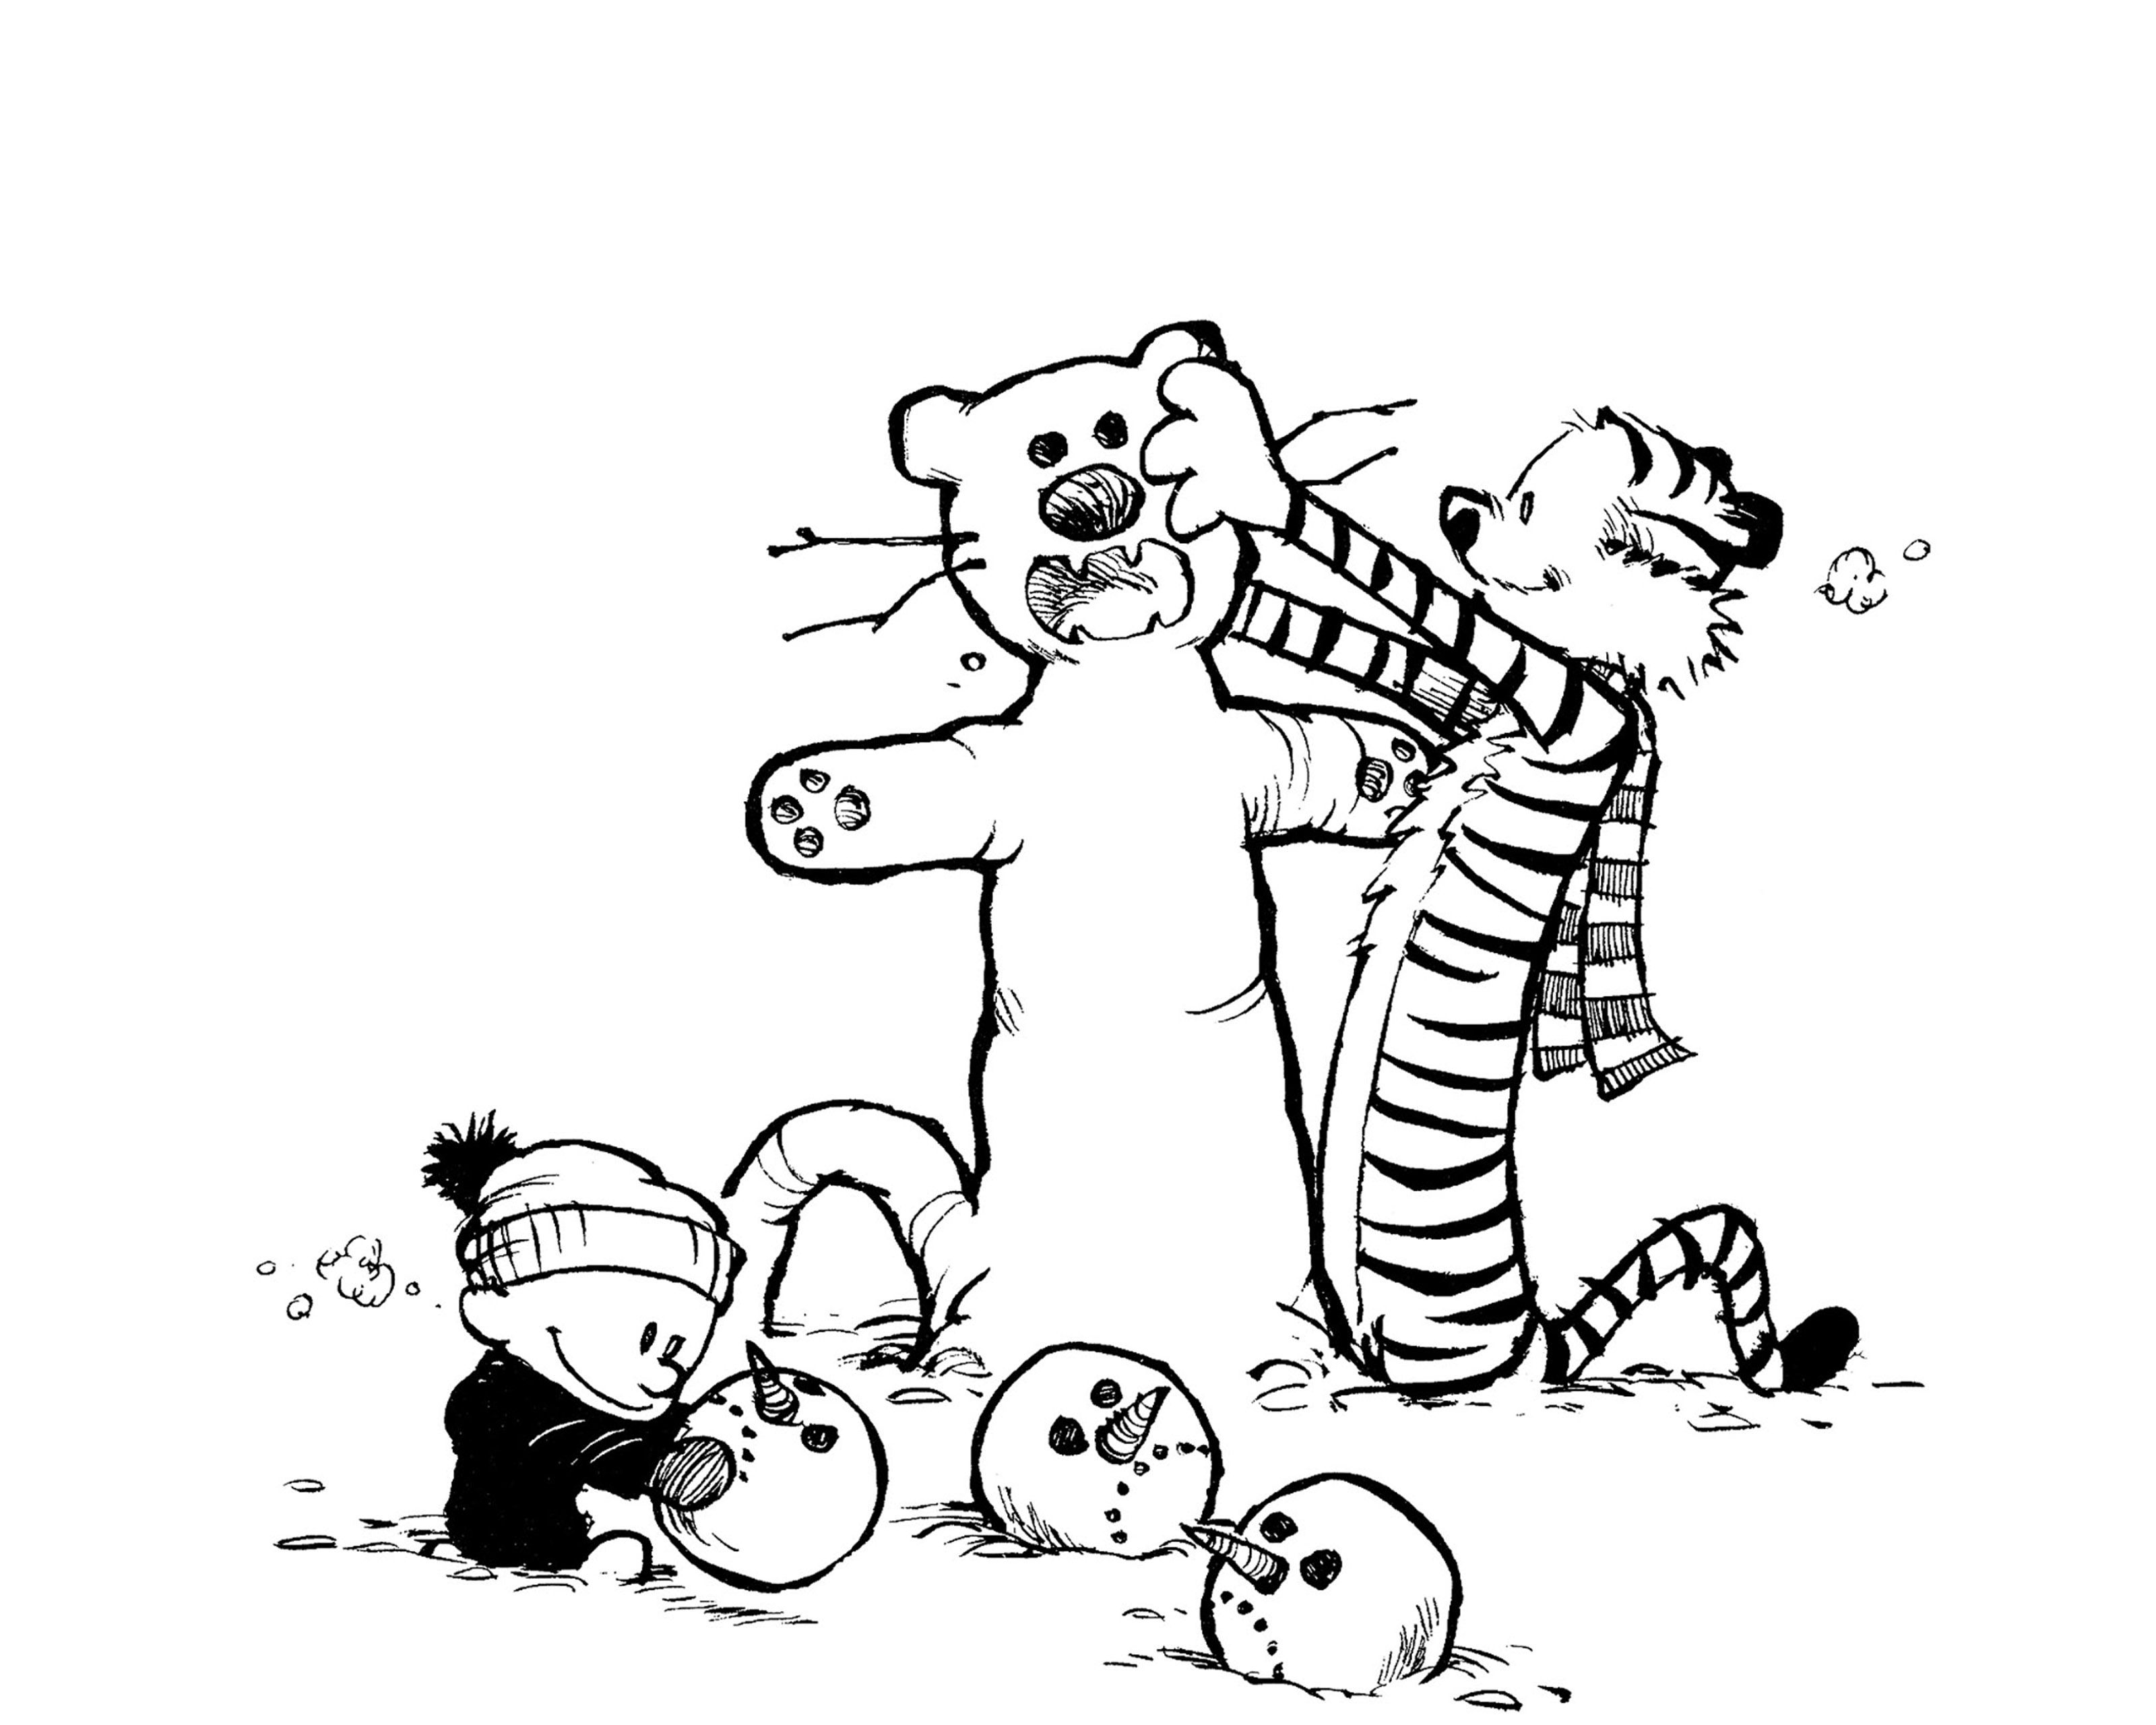 Snow Tiger Comic Android Wallpaper Mobile9 Calvin And Hobbes